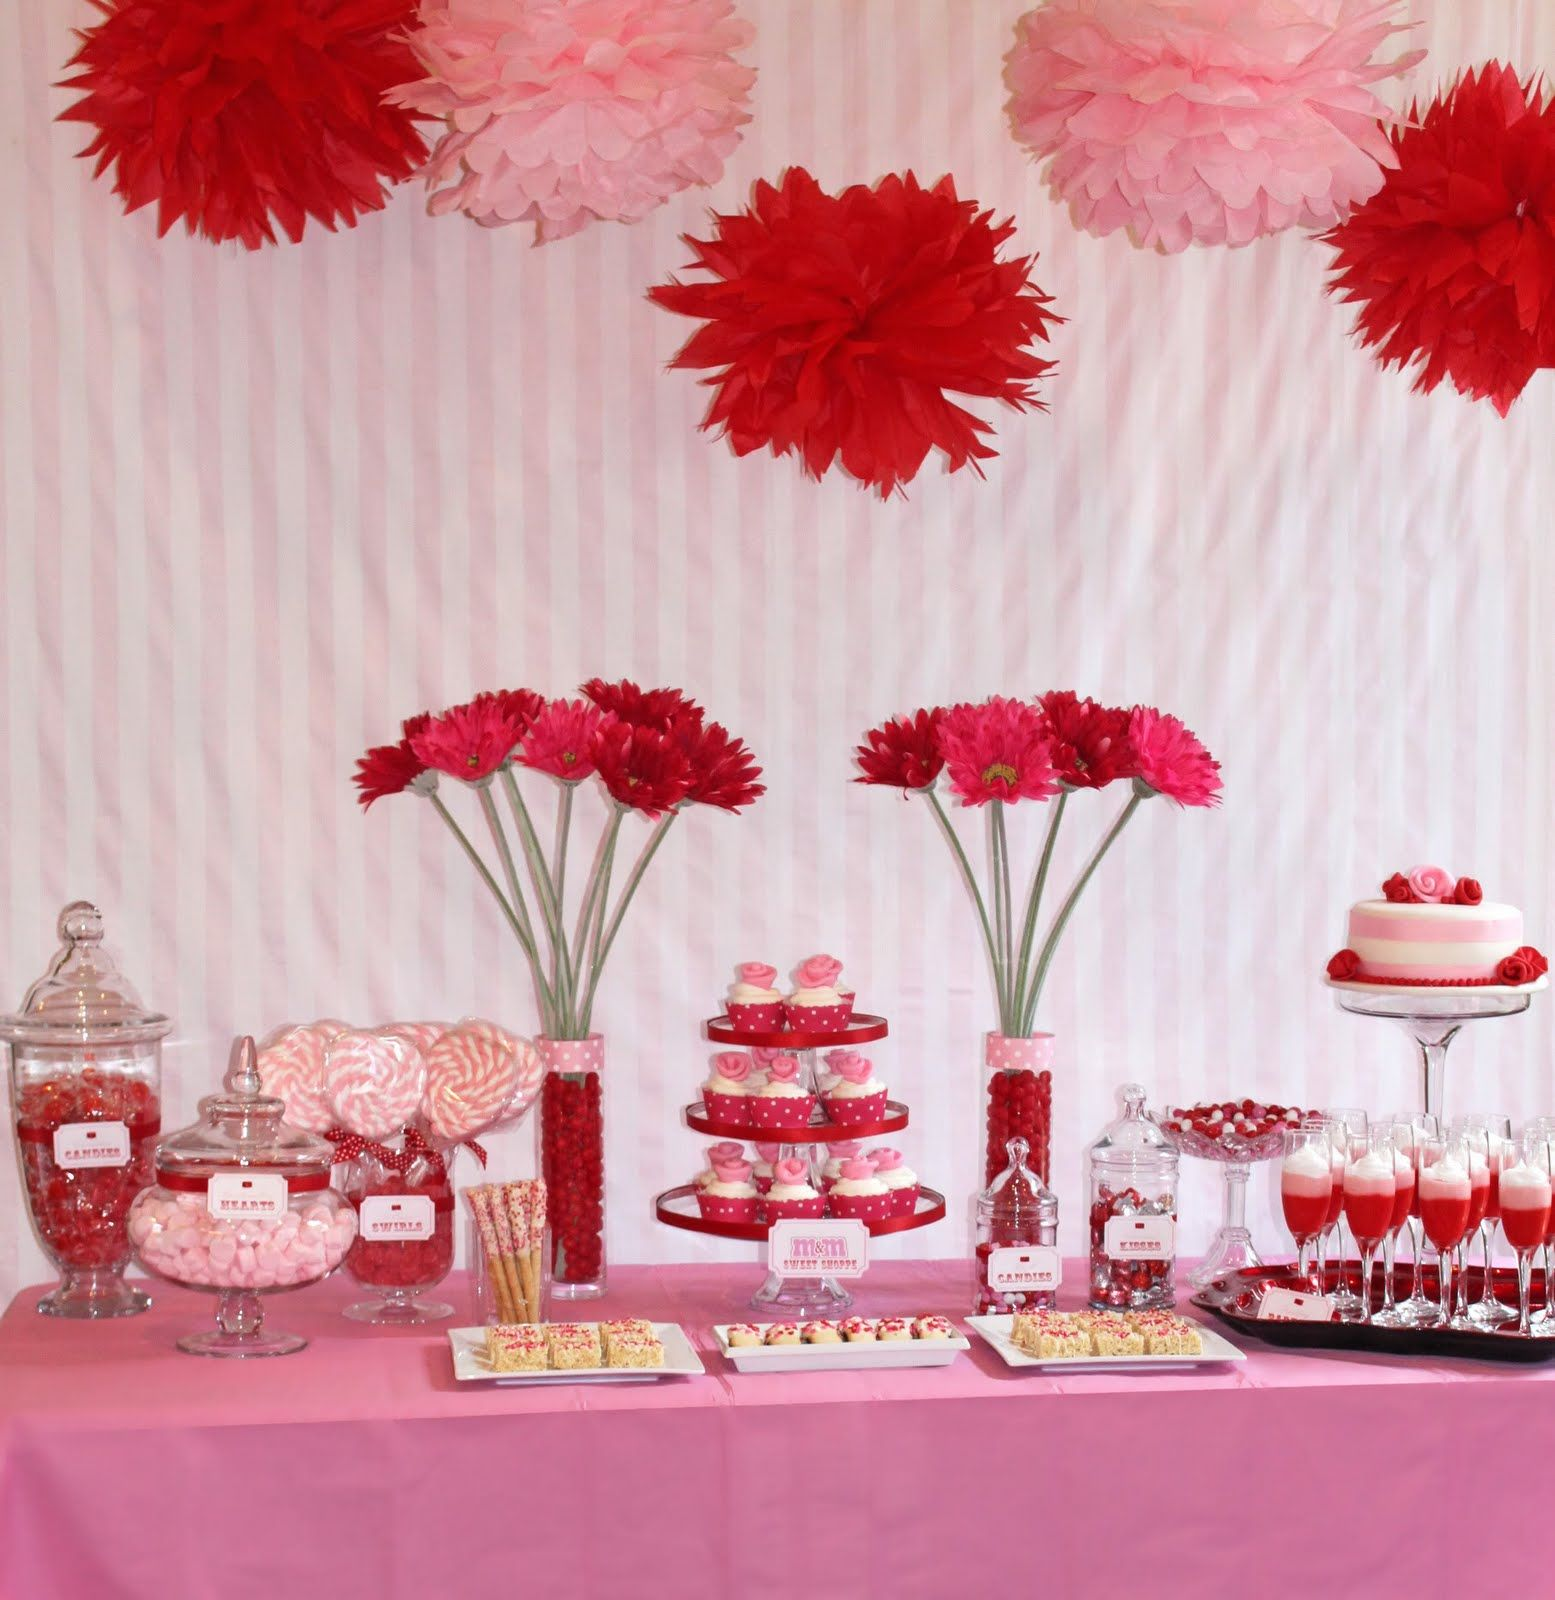 Table decoration ideas for valentines day - Sweet Valentine S Day Party